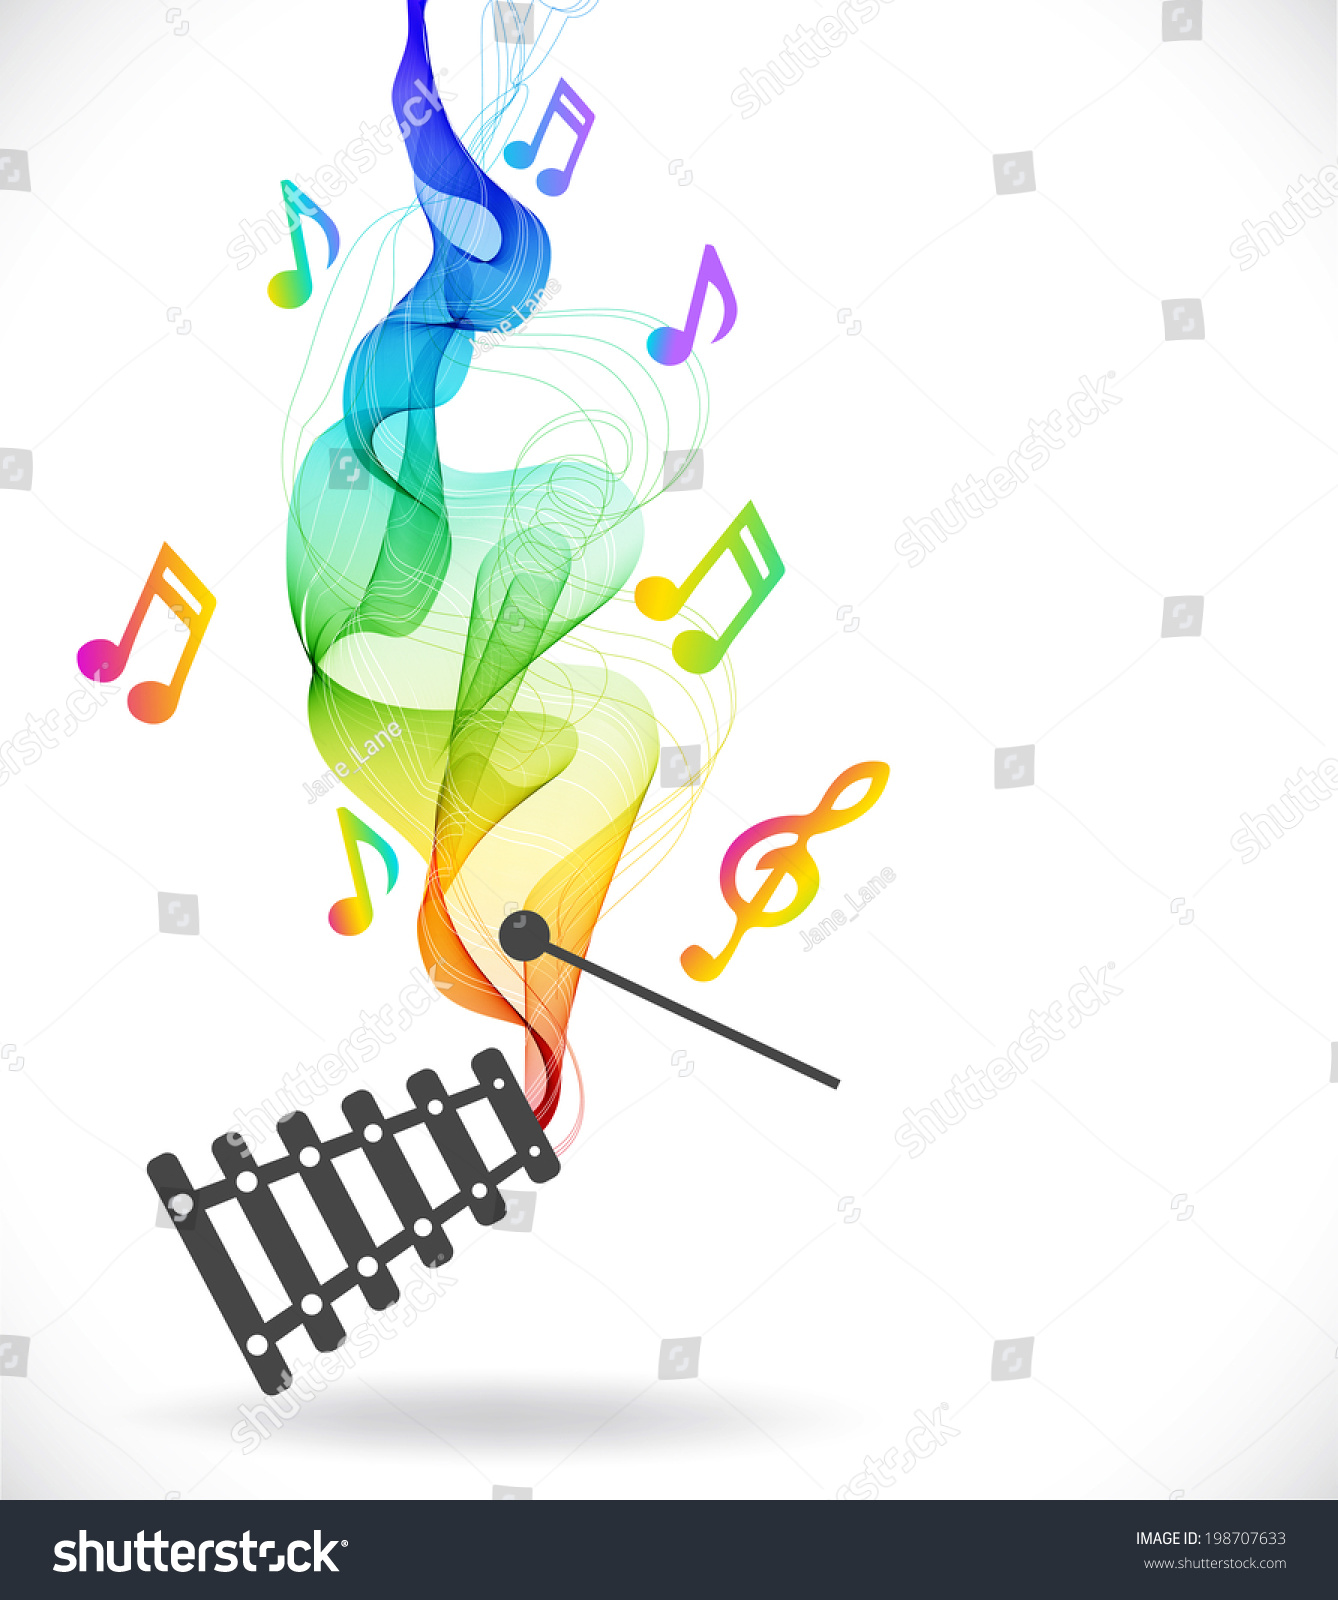 Dark Gray Xylophone Icon With Color Abstract Wave Over White Ez Canvas Notes Diagram Id 198707633